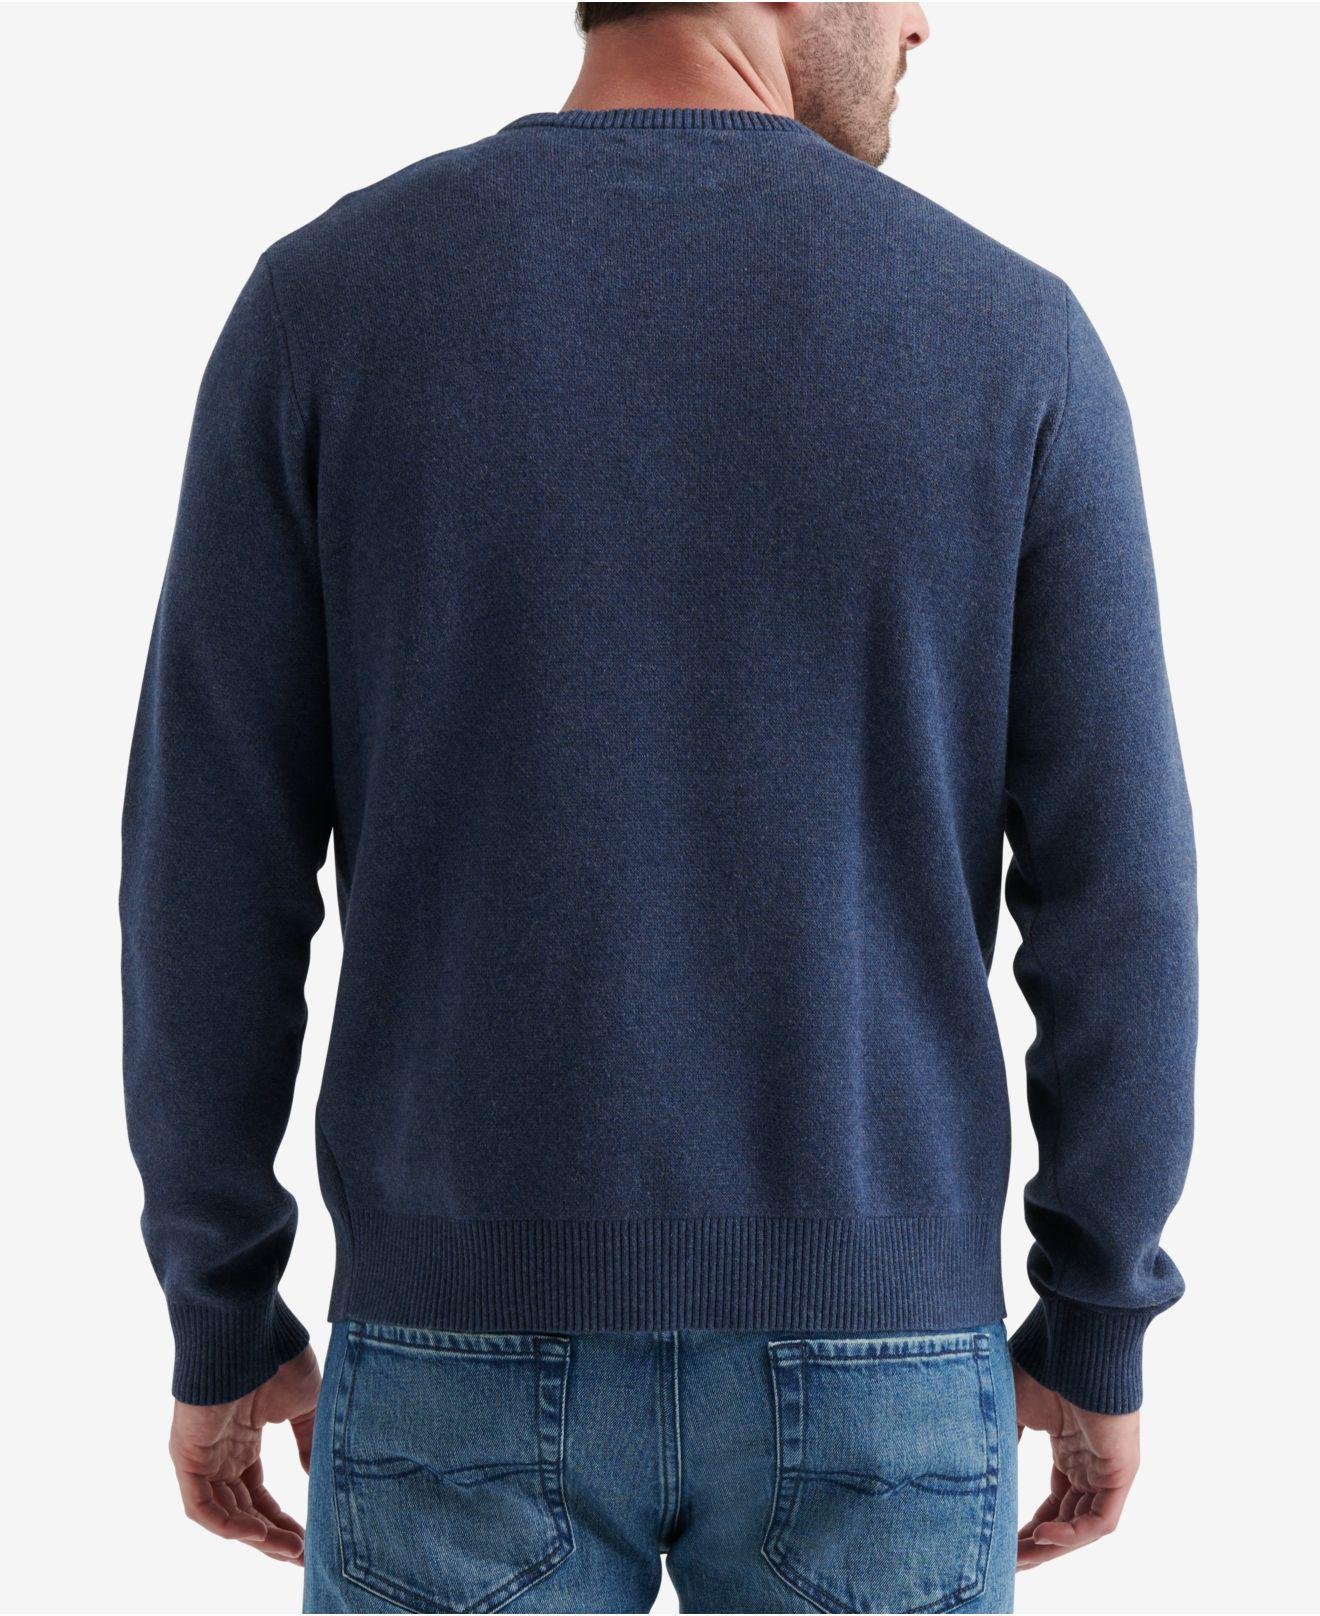 Lyst lucky brand fender graphic sweater in blue for men save 68